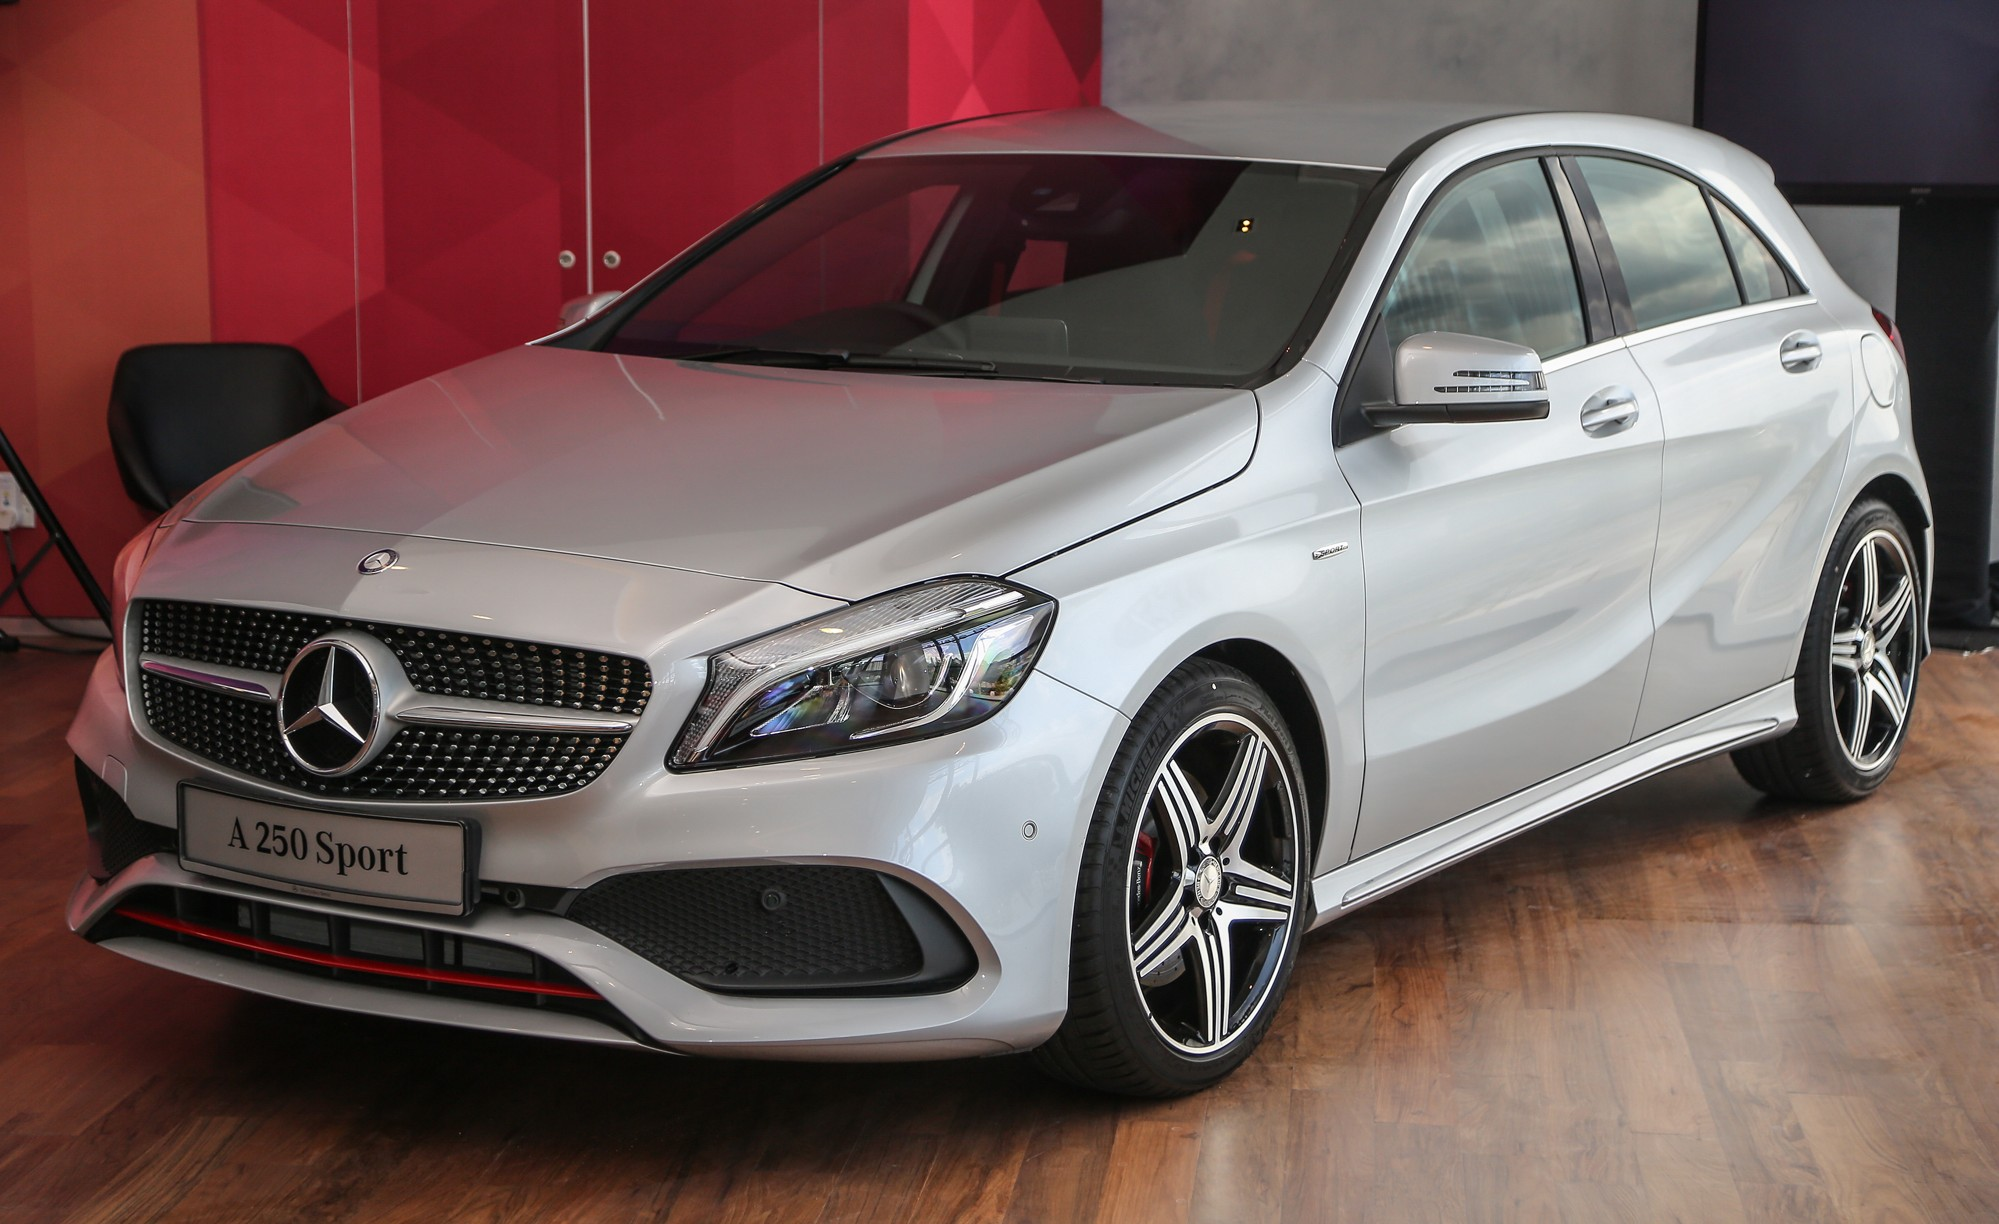 mercedes-benz a250 sport - price revised to rm249k, c-class coupe